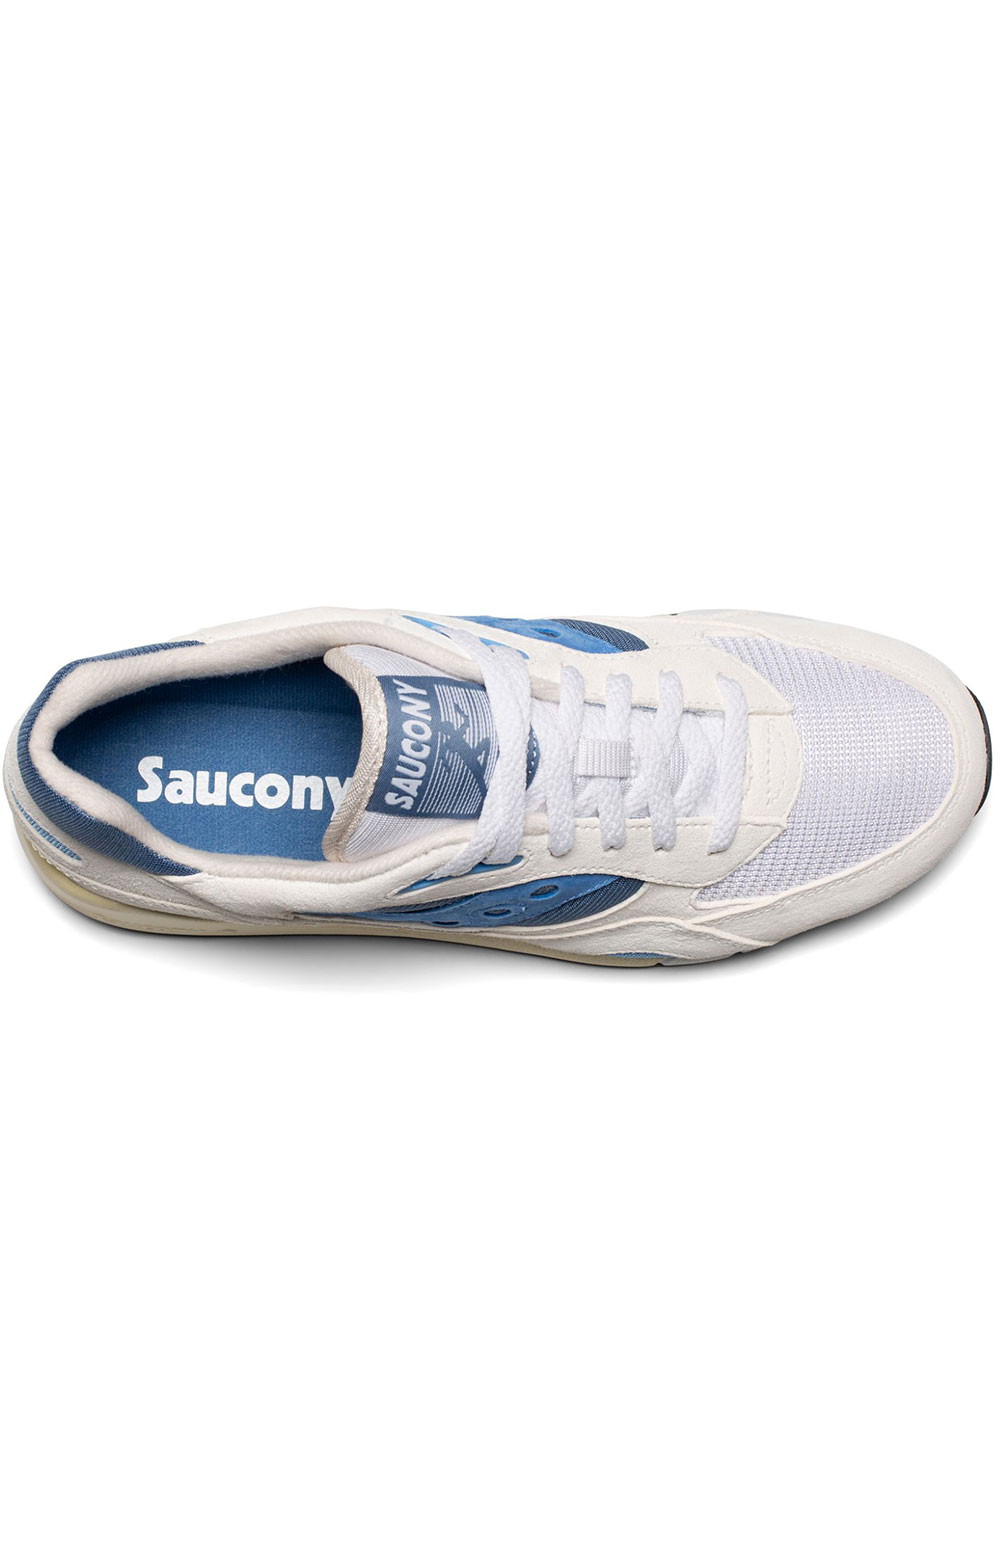 (S70441-13) Shadow 6000 Shoes - White/Blue 3